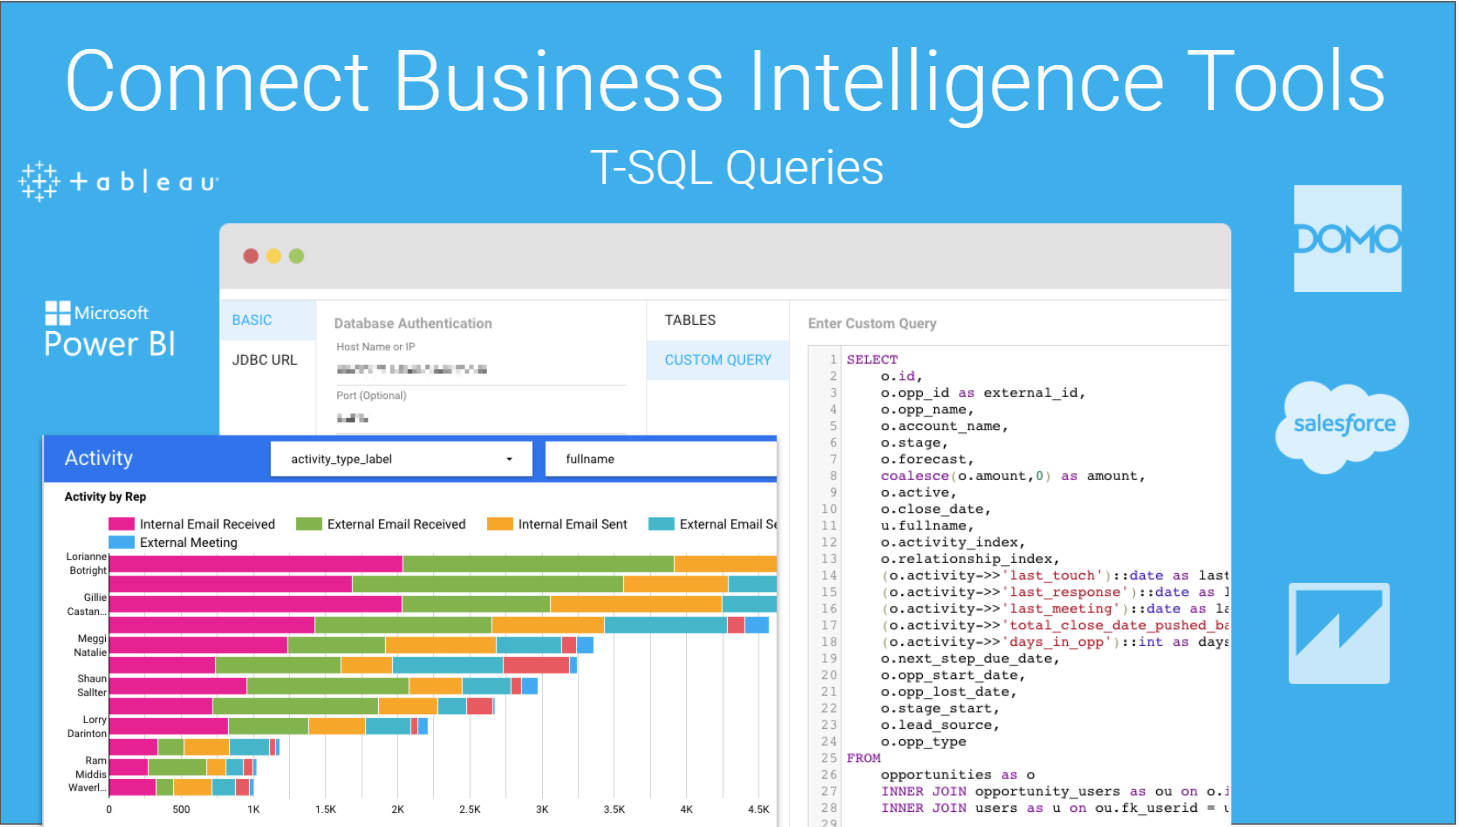 Access and visualize insights in your favorite business intelligence tool of choice